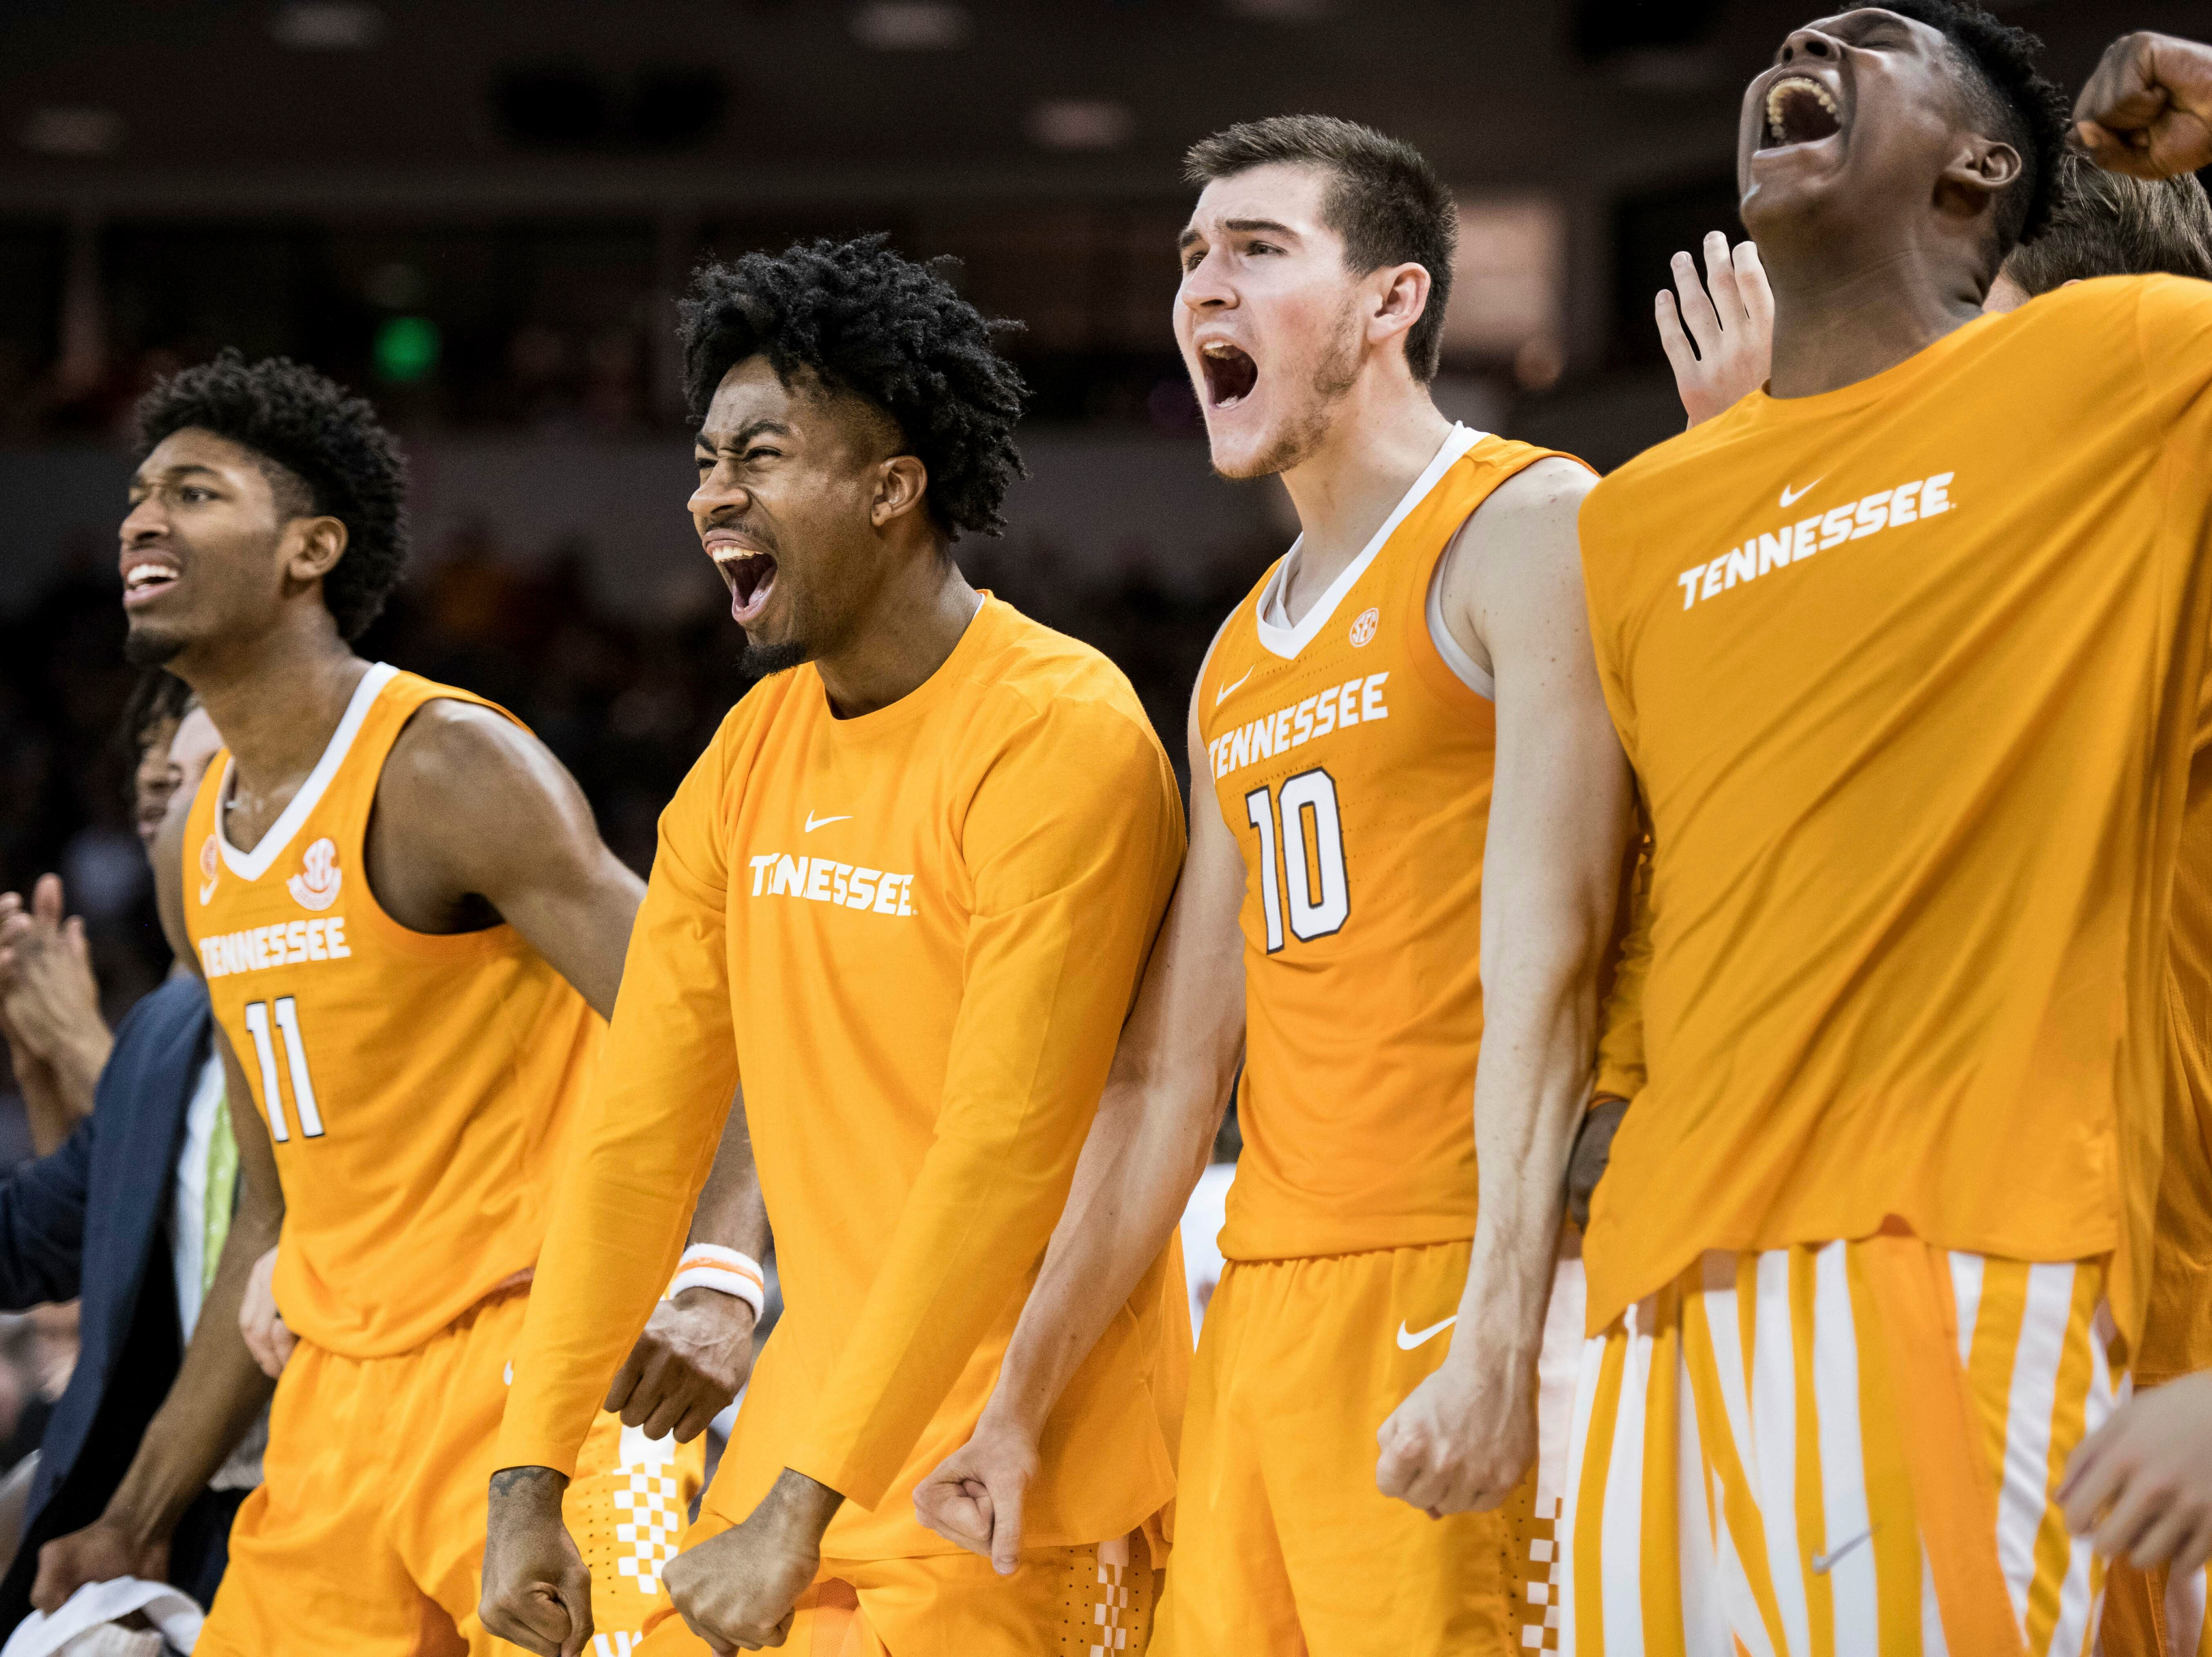 Tennessee forward John Fulkerson (10), Jordan Bowden and Kyle Alexander (11) celebrate a basket against South Carolina during the second half of an NCAA college basketball game Tuesday, Jan. 29, 2019, in Columbia, S.C. Tennessee defeated South Carolina 92-70.